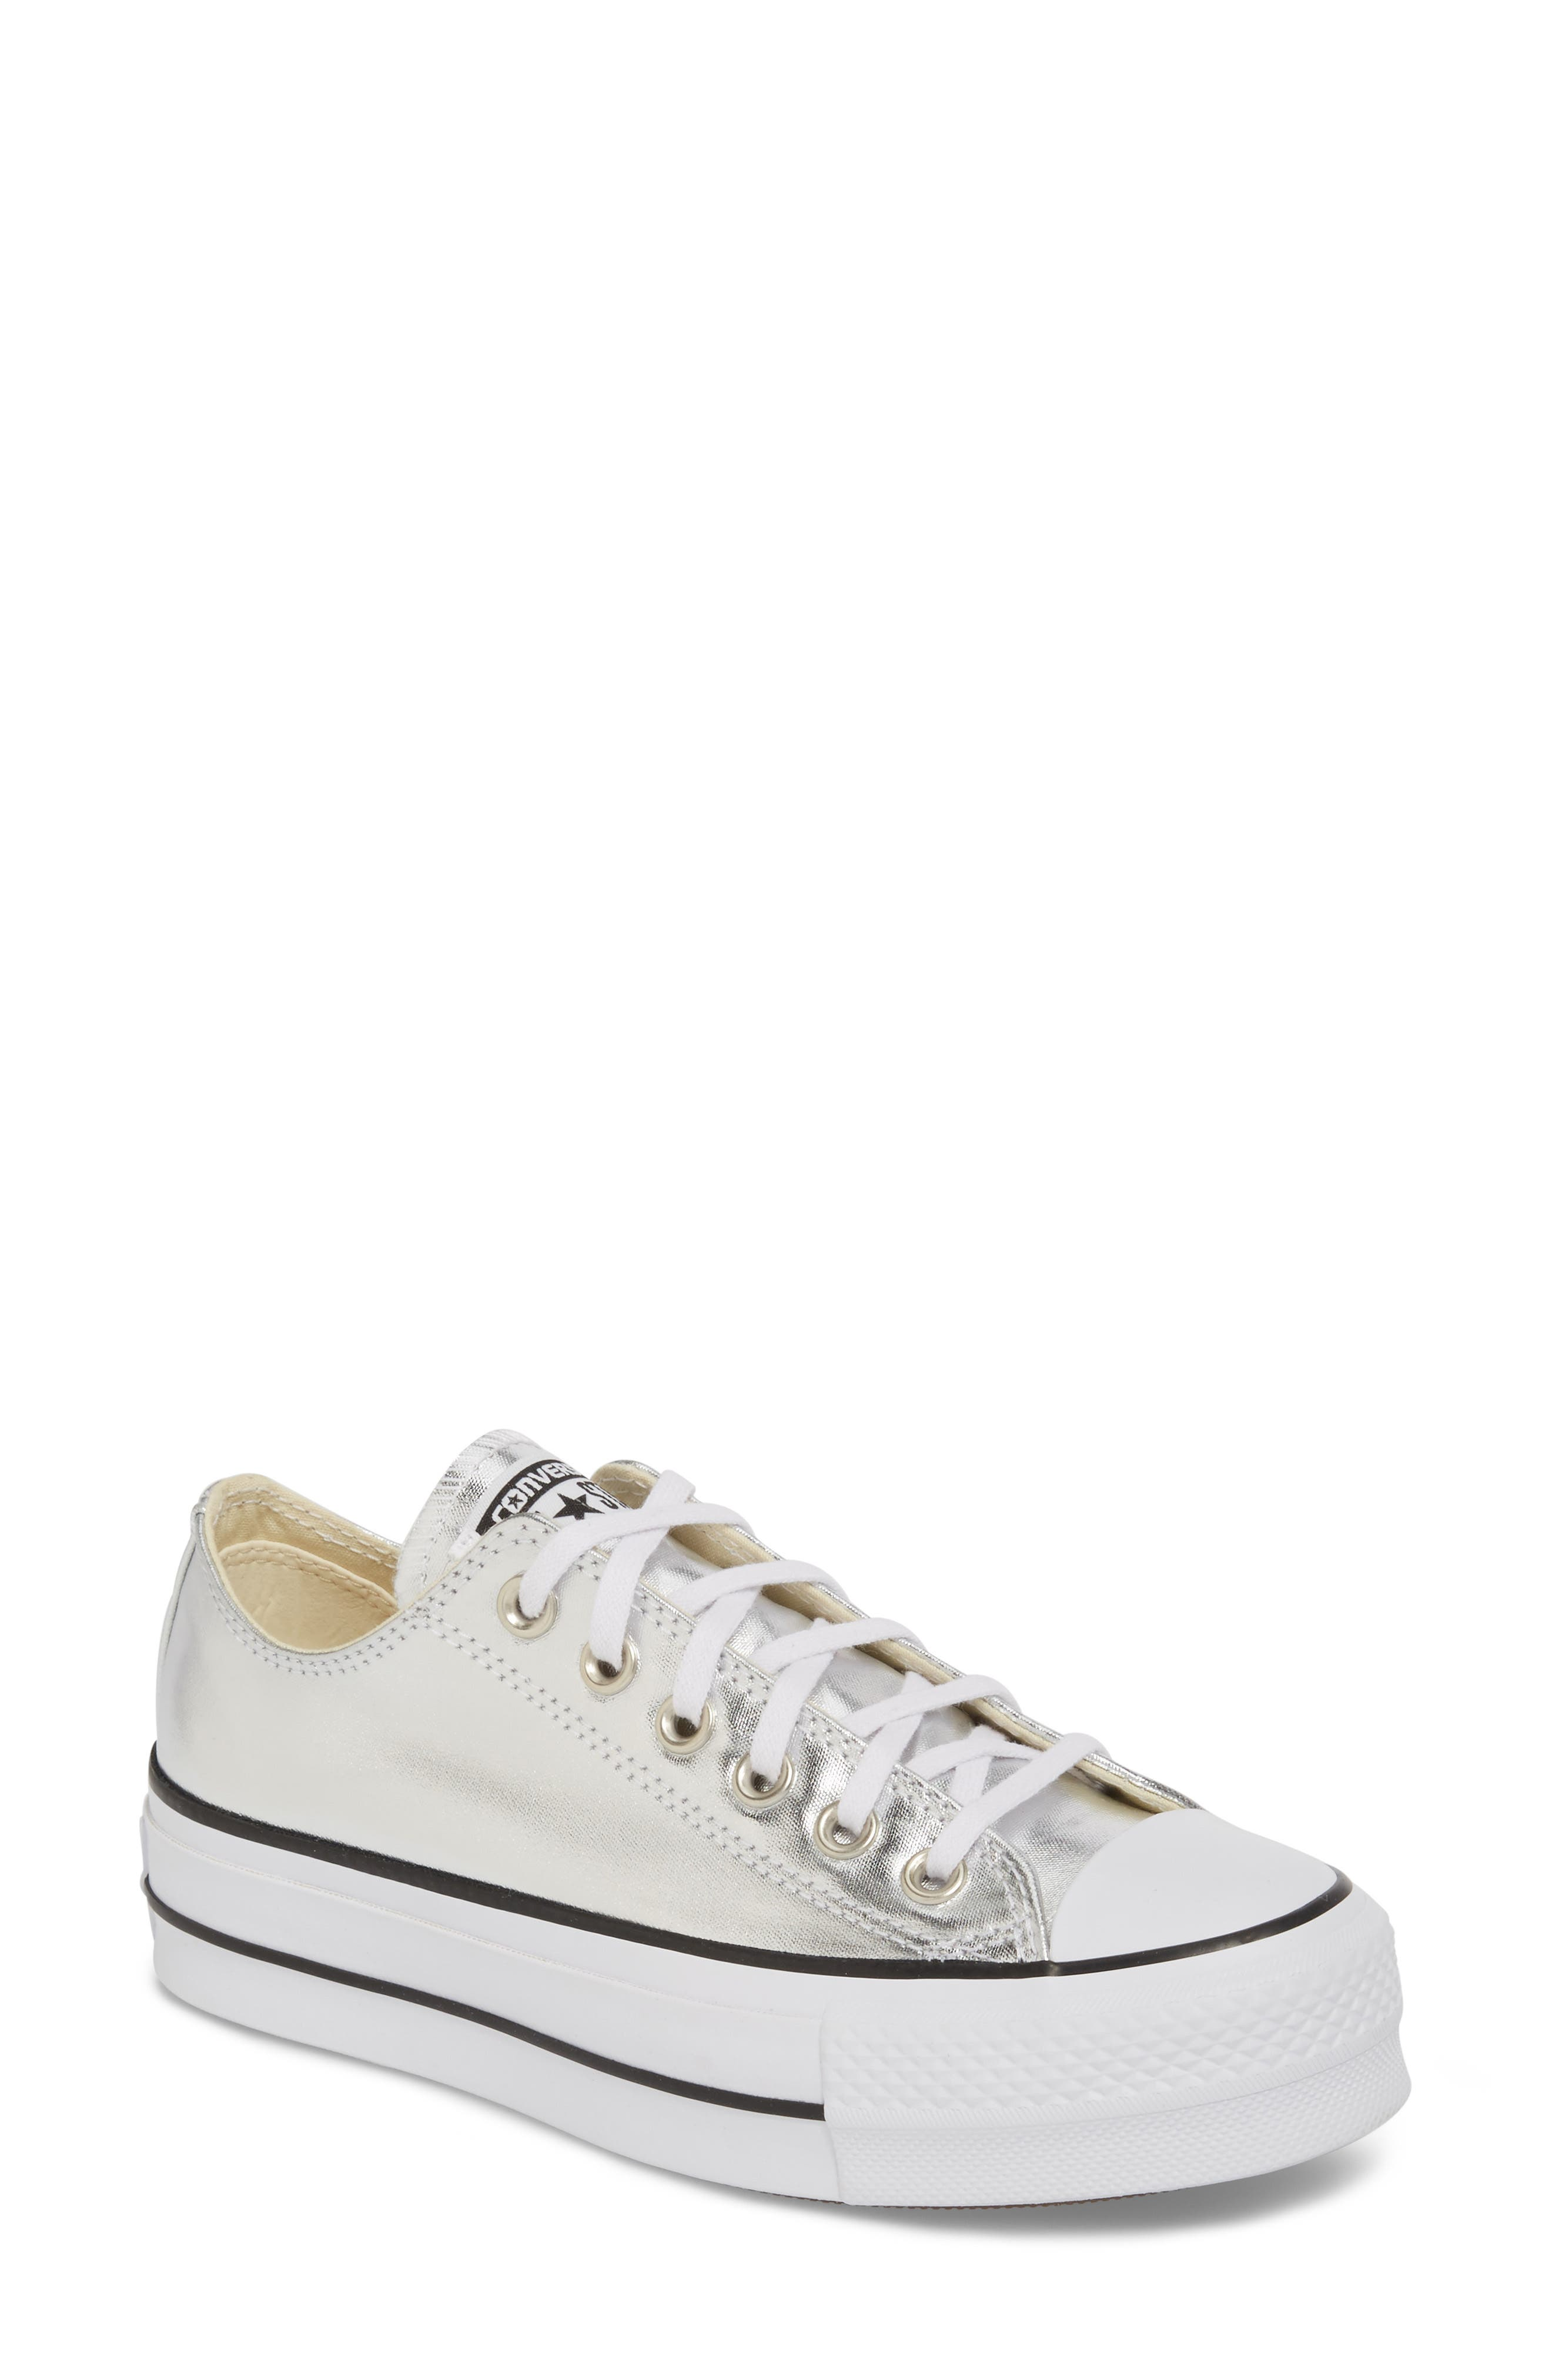 Chuck Taylor<sup>®</sup> All Star Platform Sneaker,                         Main,                         color,